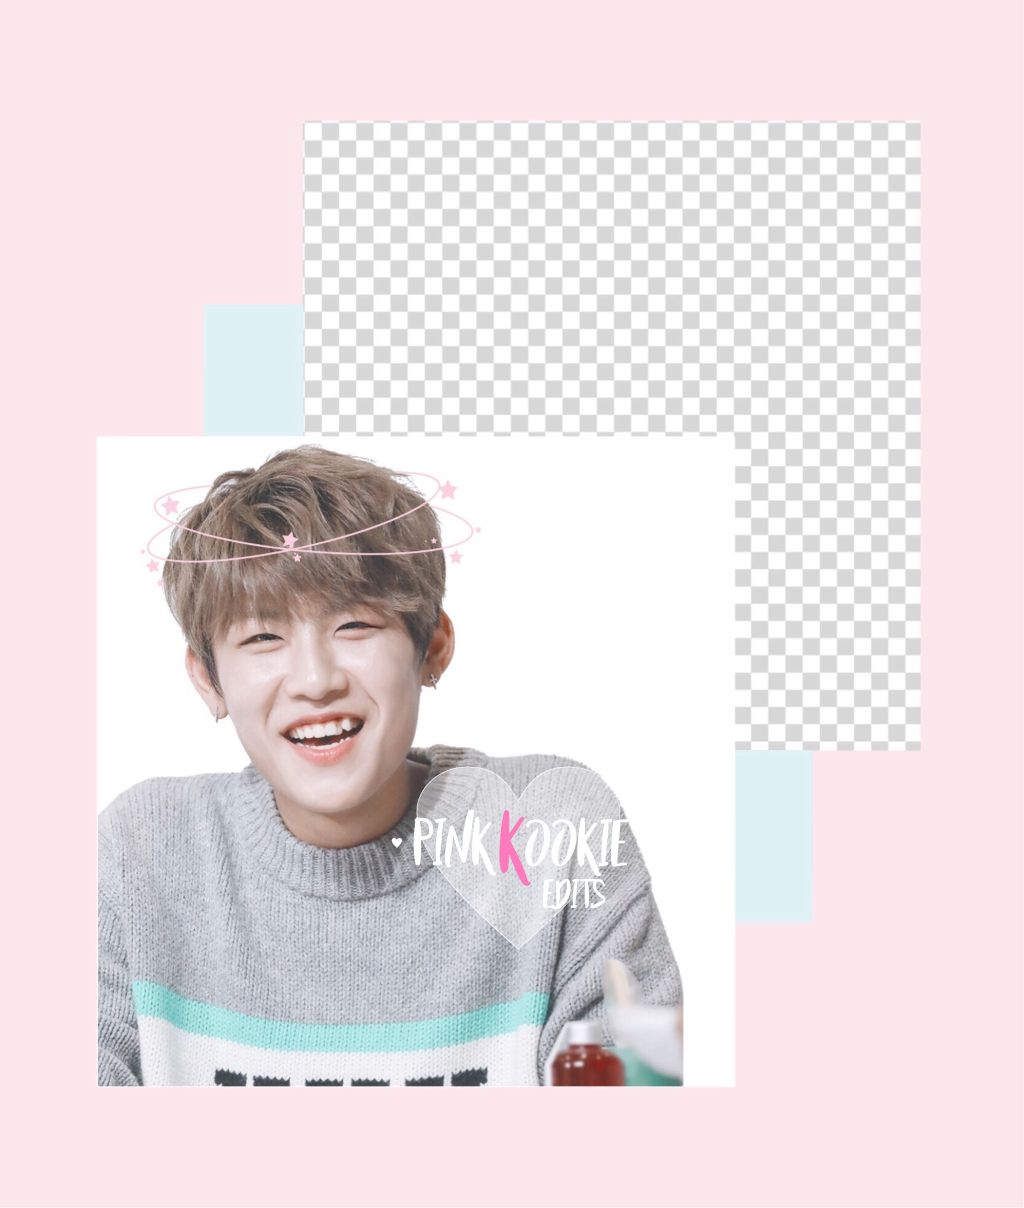 hbd woojin!! precious!! 💖💖  ive been so! busy! lately! i need time for myself..school is so stressful 😫  and all my faves are coming back this month skslkdkdd astros mv!!!! i cant!!!  #woojin #parkwoojin #wannaone #produce101 #kpop #kpopedit #wannaoneedit